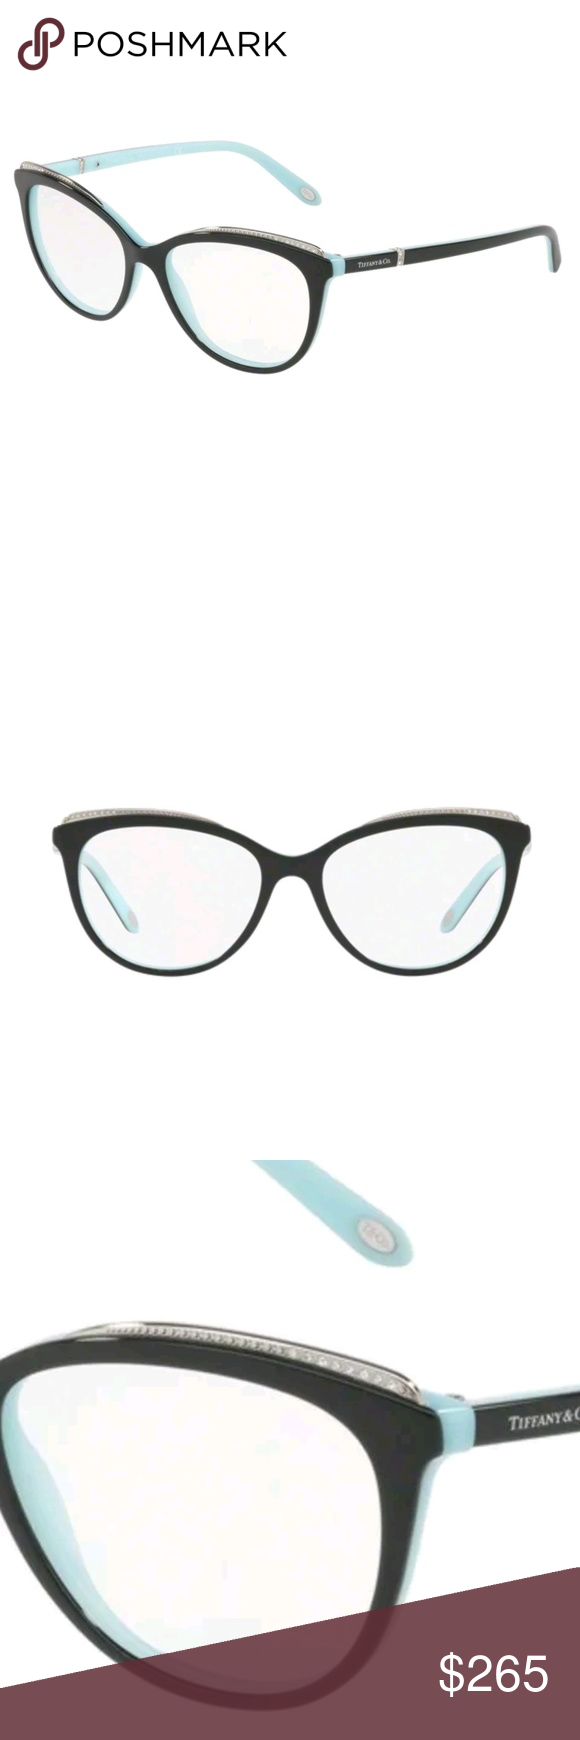 a7aa2a328370 Tiffany   CO eyeglasses New and authentic Tiffany   CO eyeglasses Black and  teal frame 54-16-140 Includes case